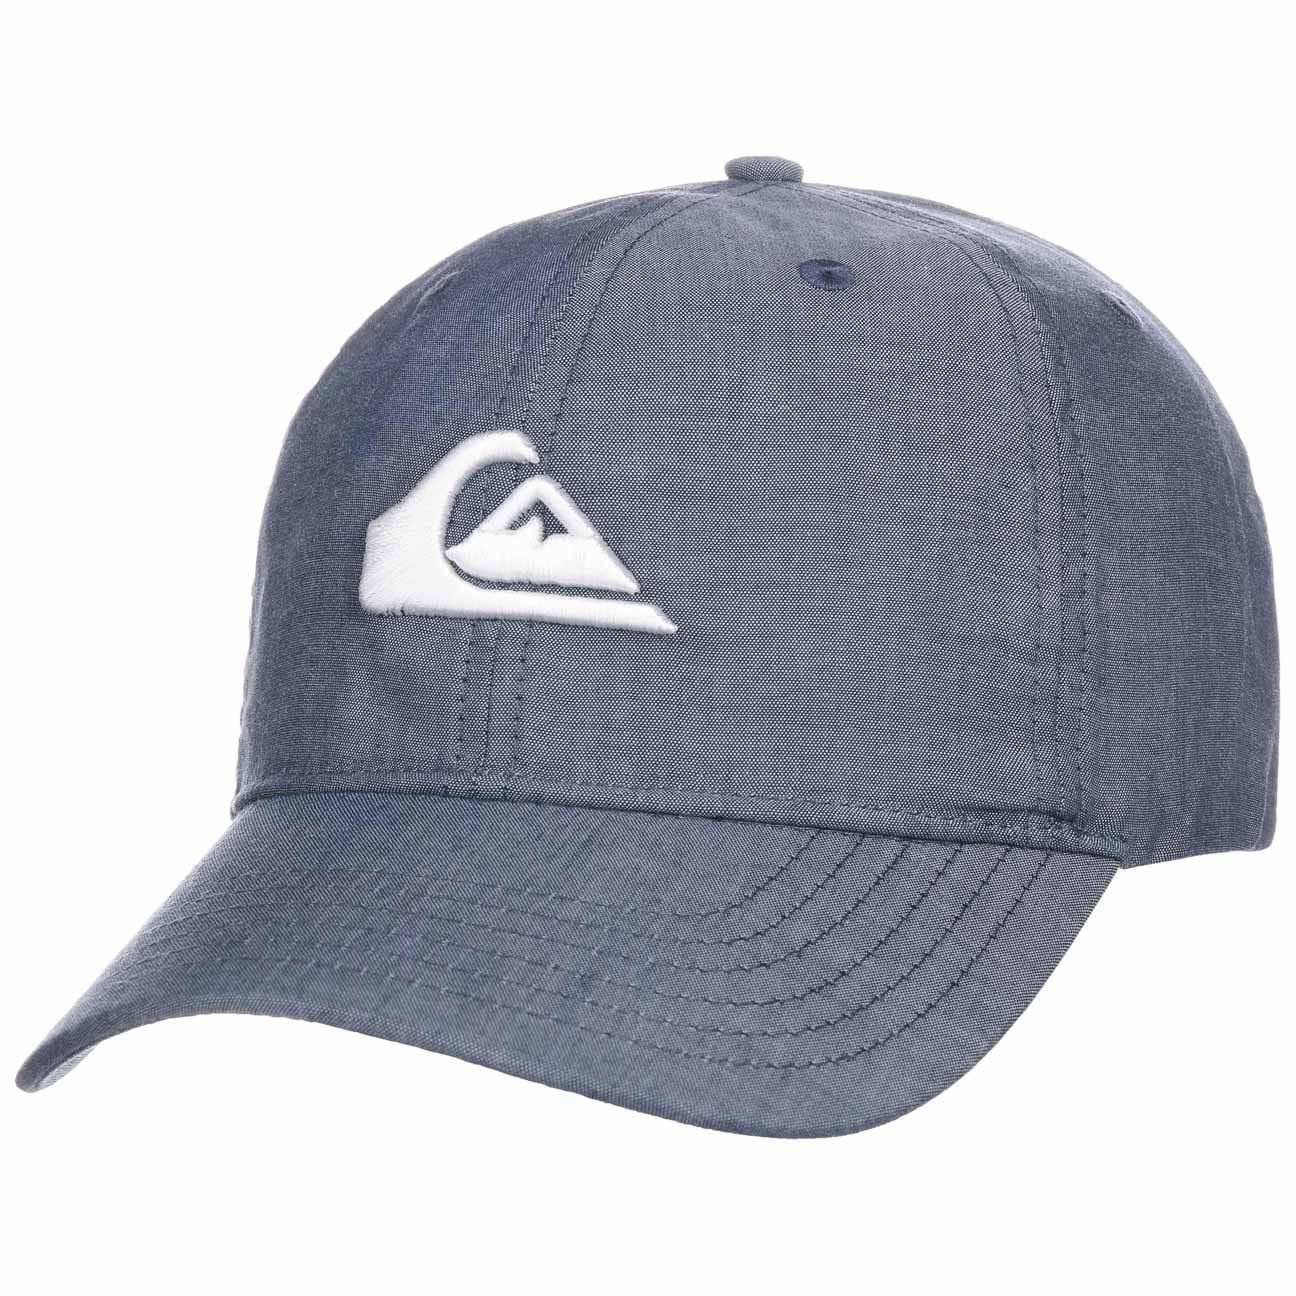 Gorra Charger Plus by Quiksilver